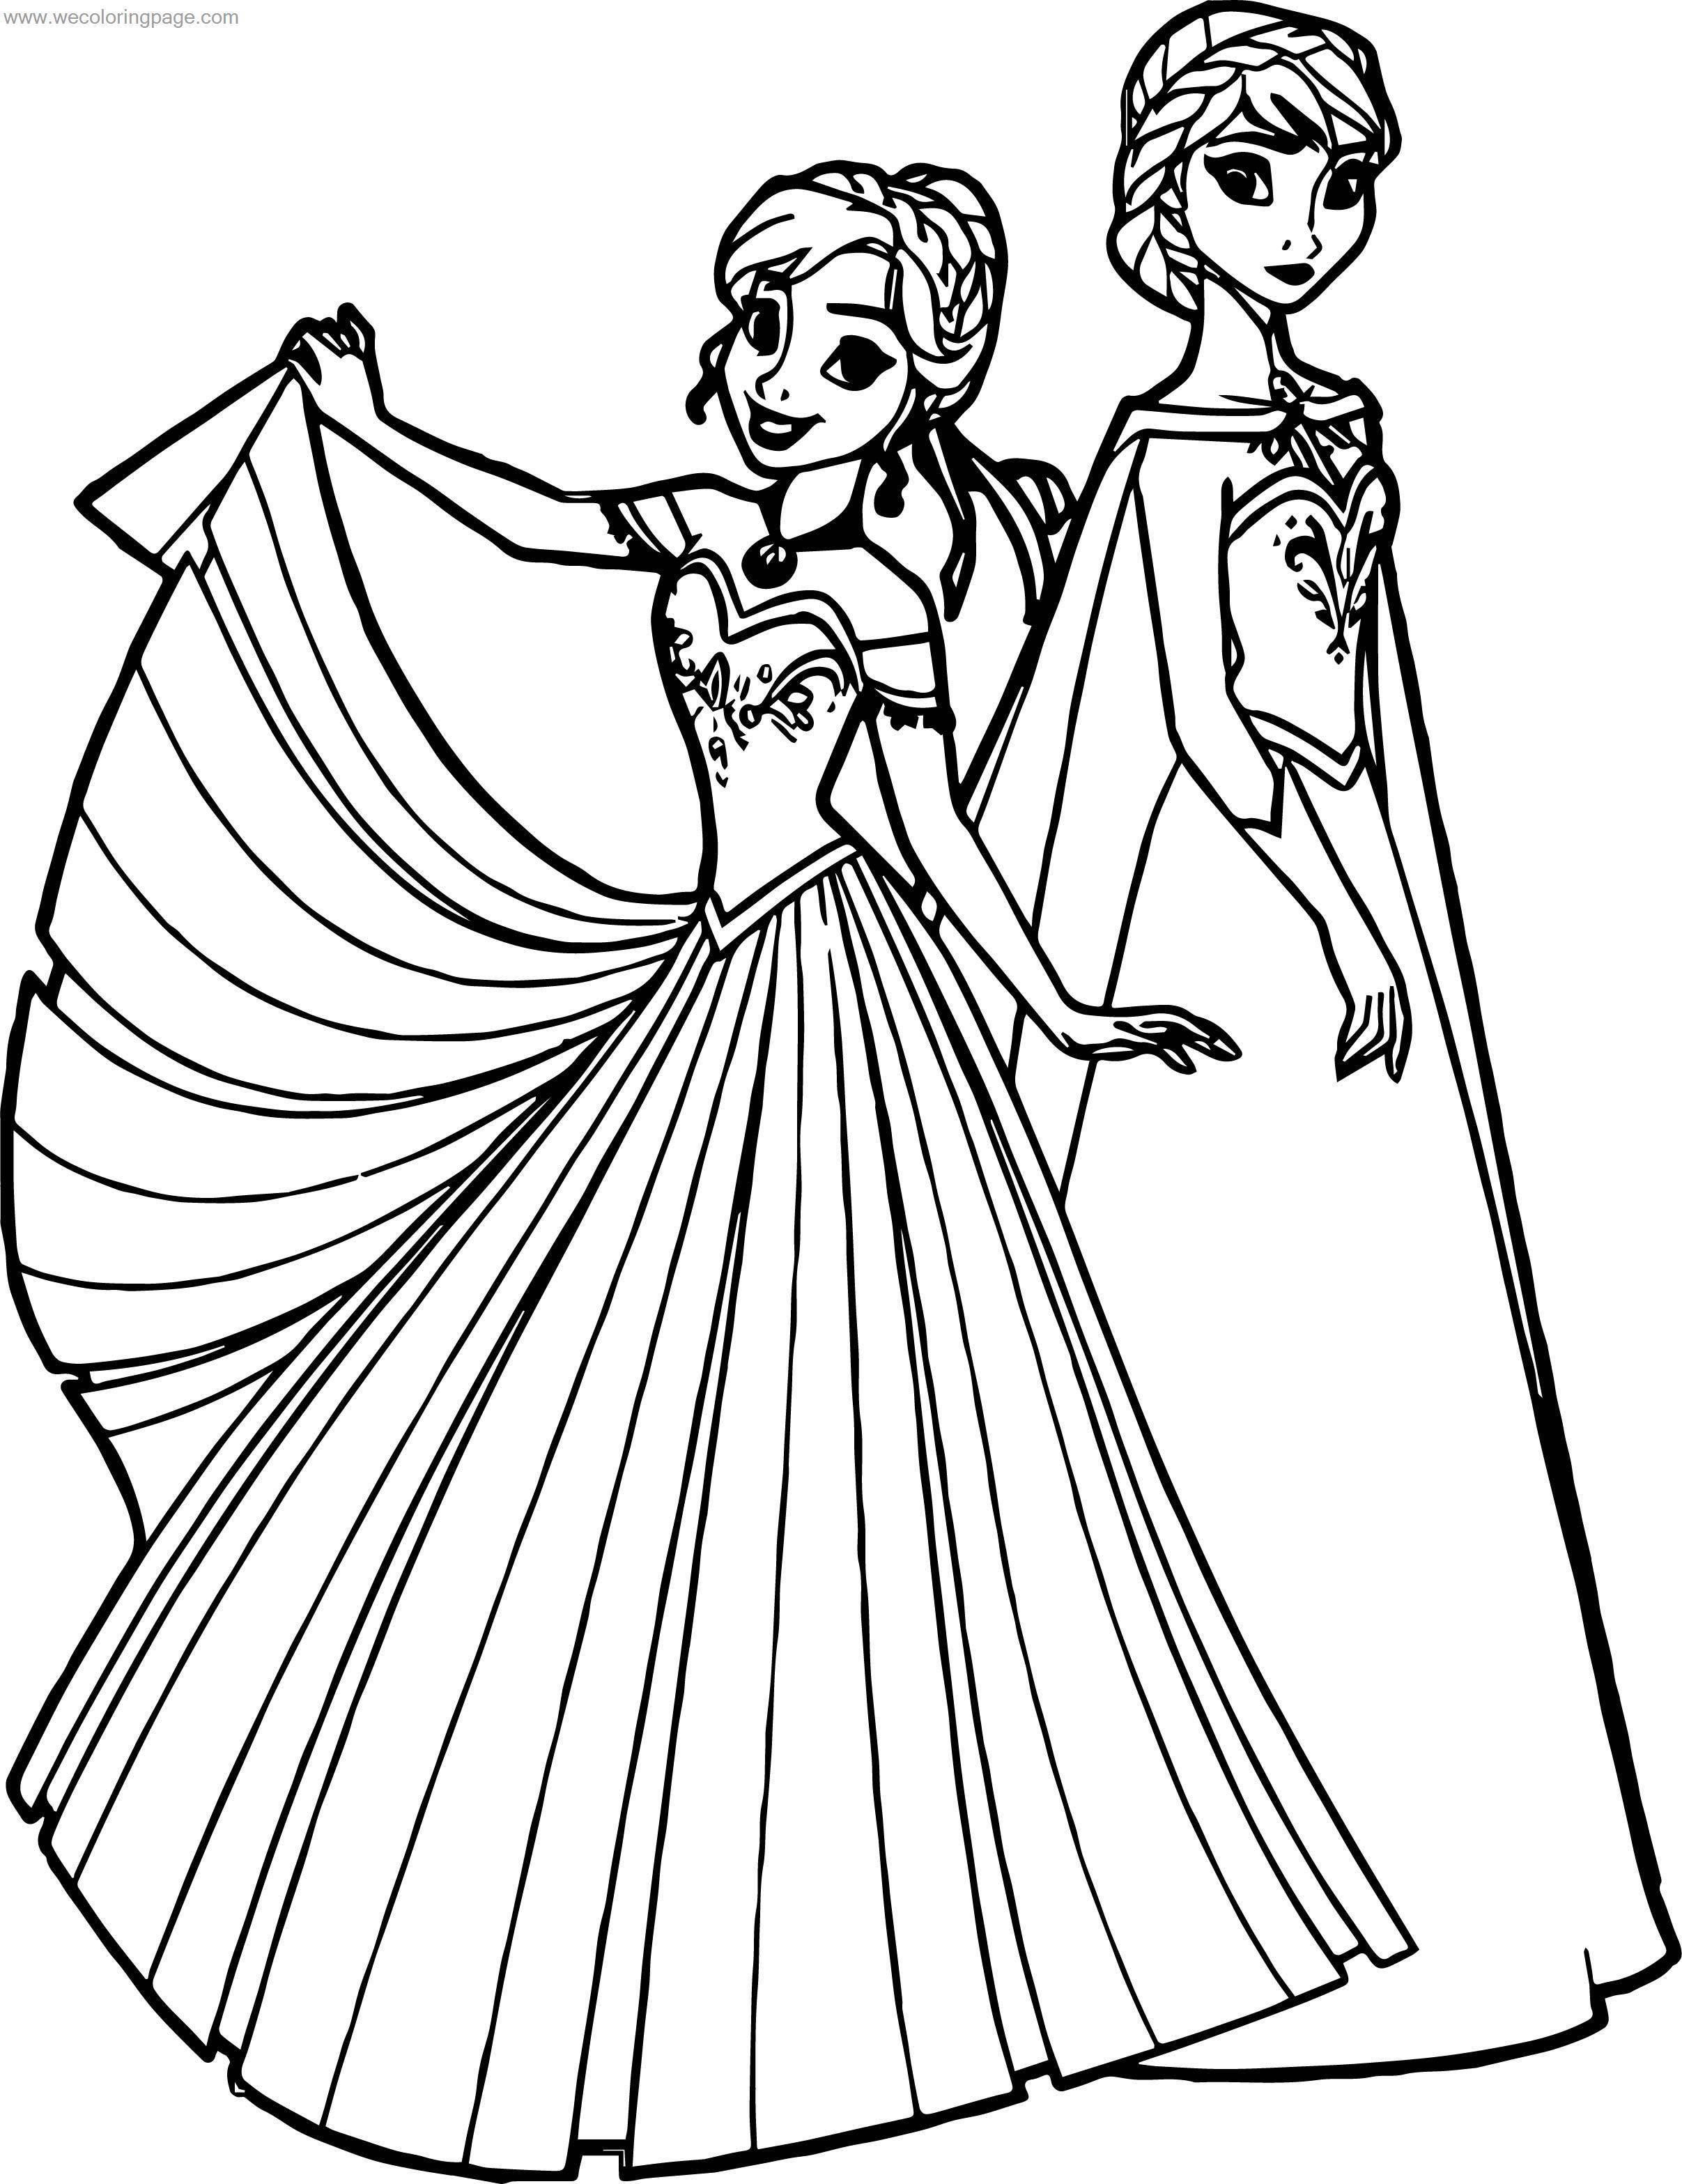 Frozen Anna Elsa Together Coloring Page